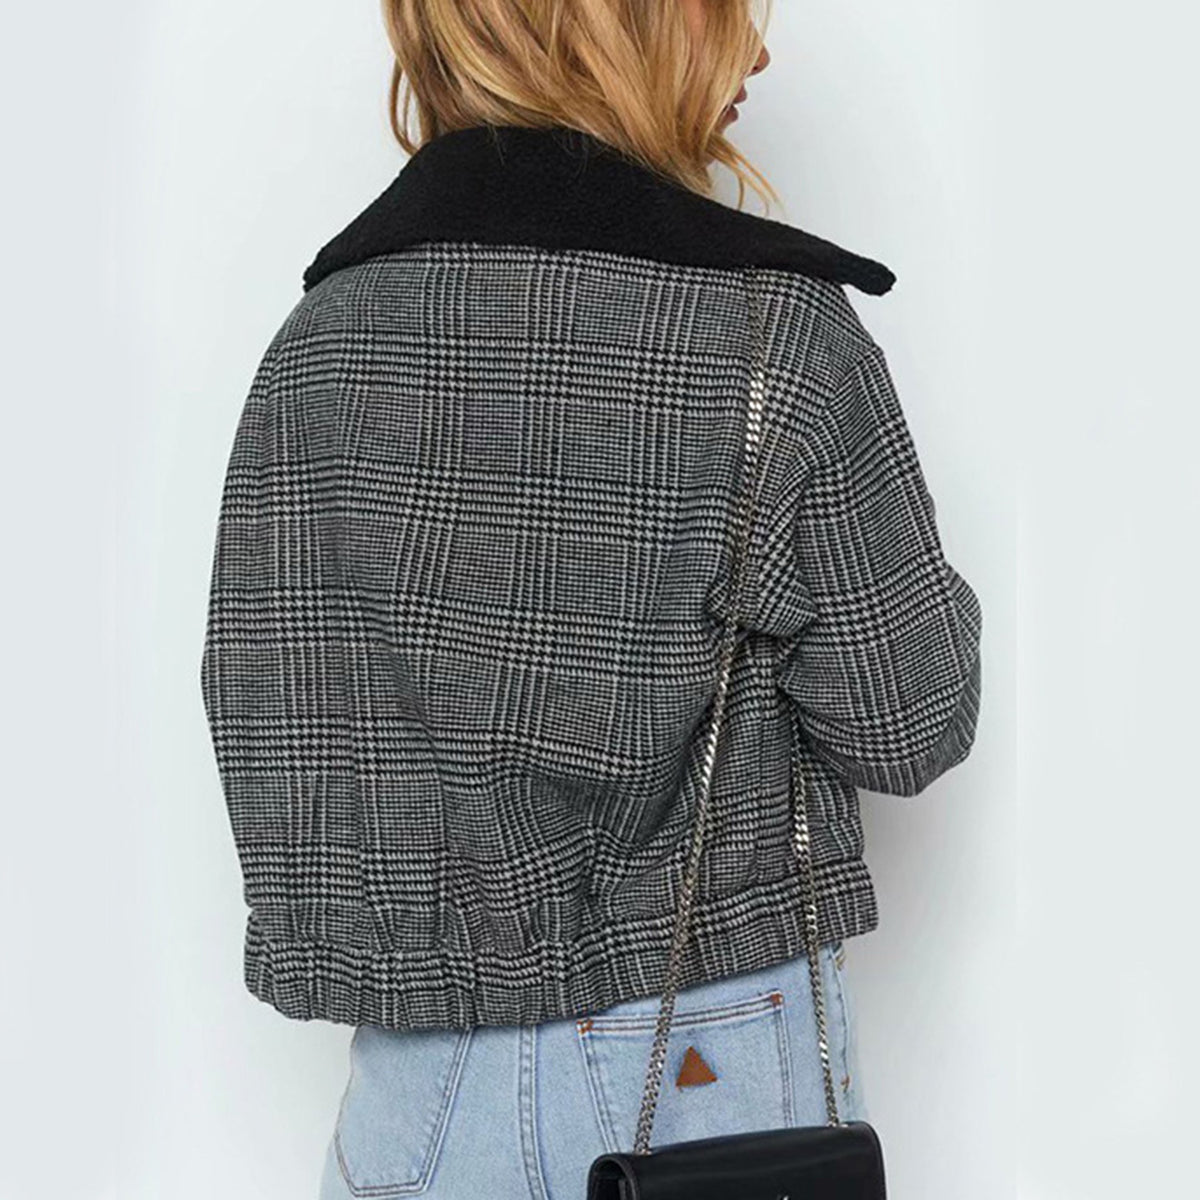 Hound-tooth Check Short Jacket - worthtryit.com